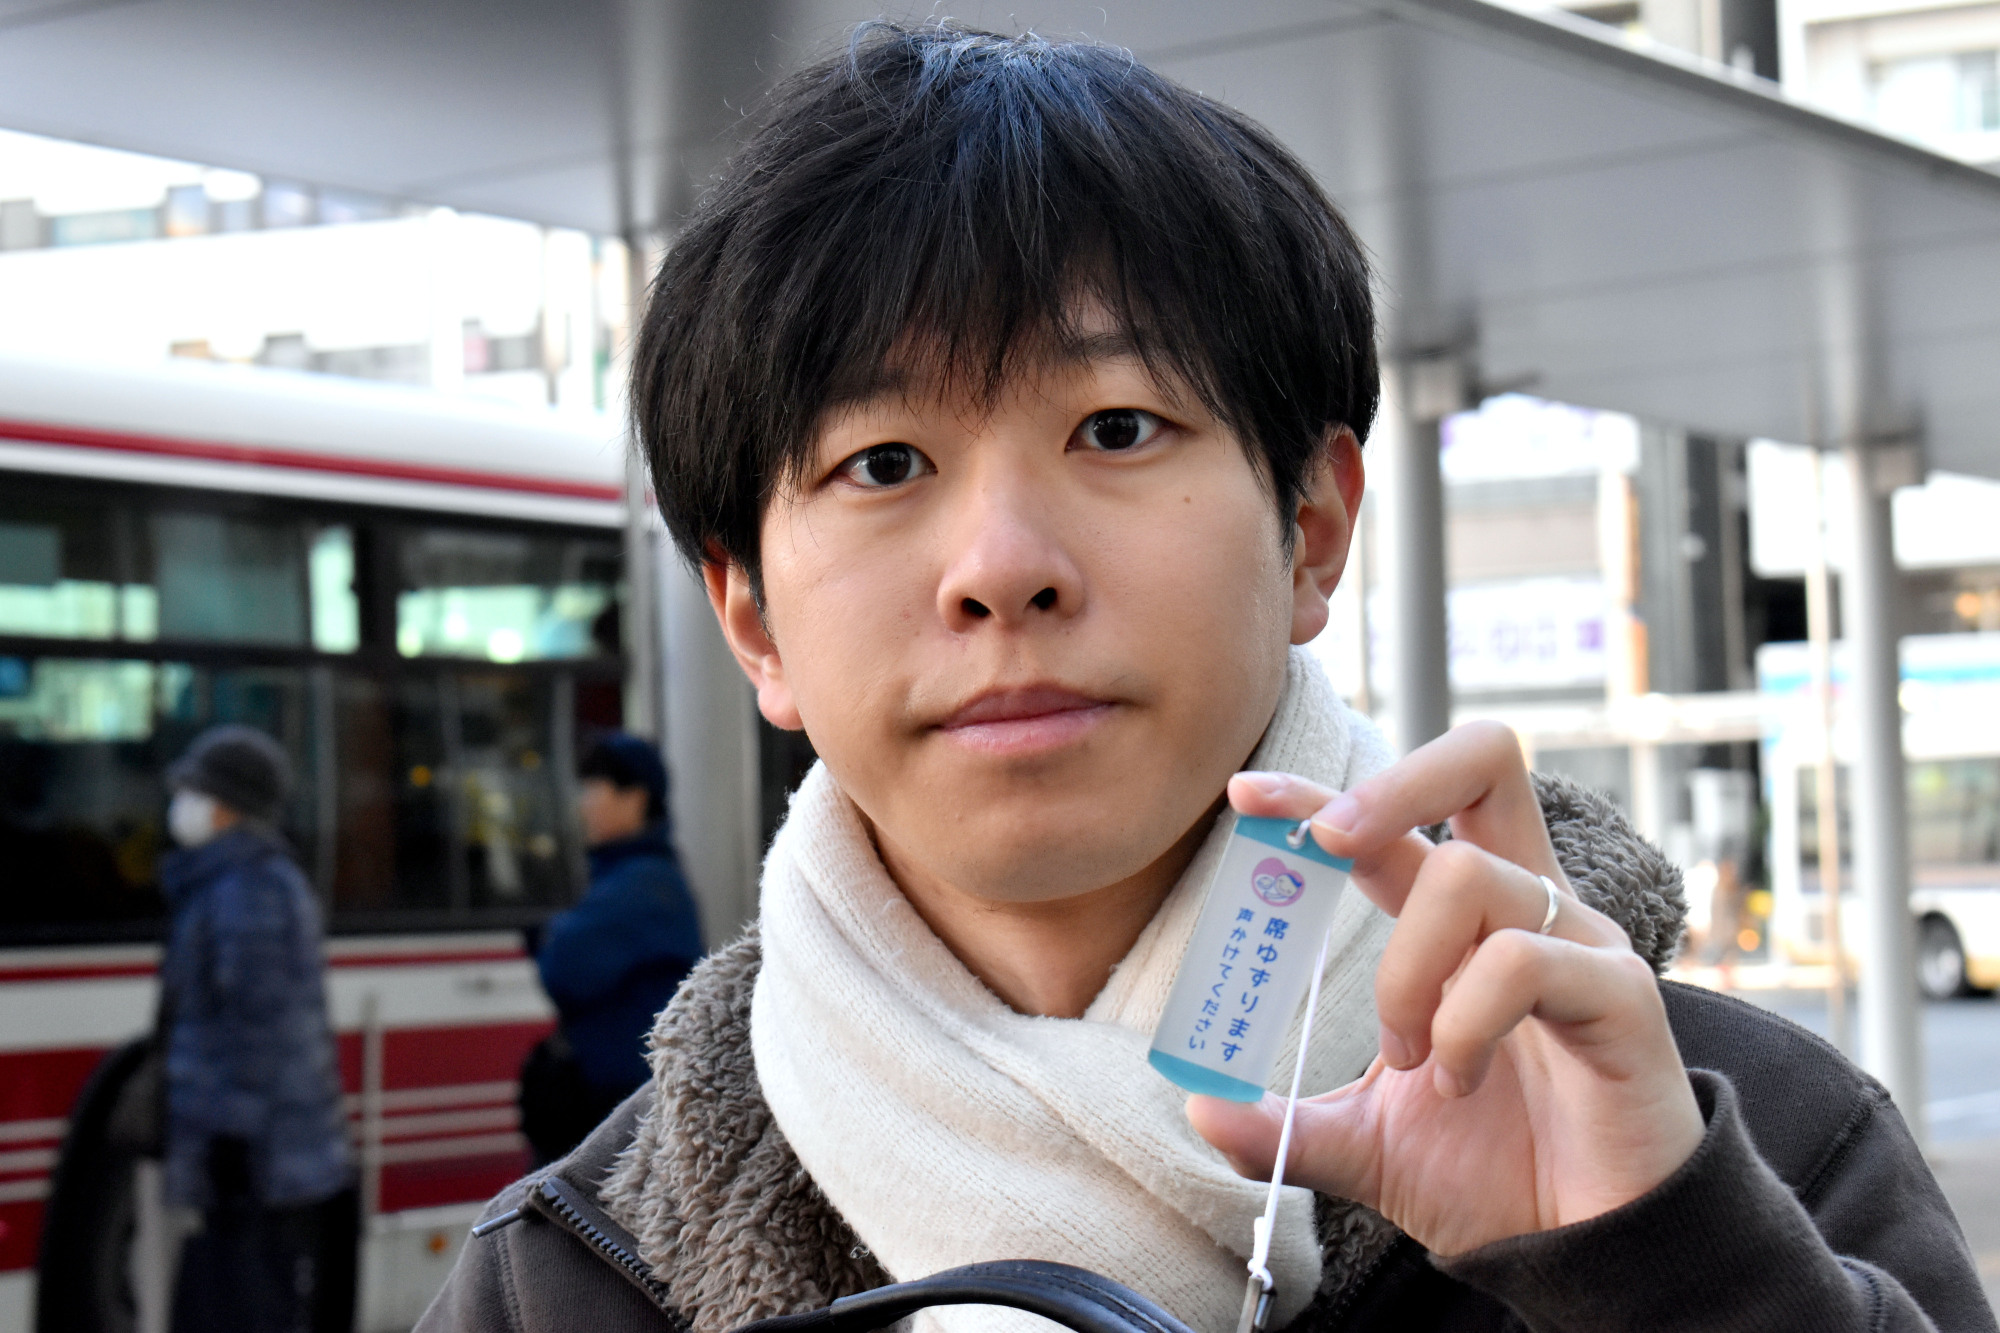 Yusuke Shiino, who is on a yearlong paternity leave after becoming a father for the first time in December, has created a badge designed to be worn by able-bodied train or bus passengers to show that they are willing to give up their seats. | SATOKO KAWASAKI